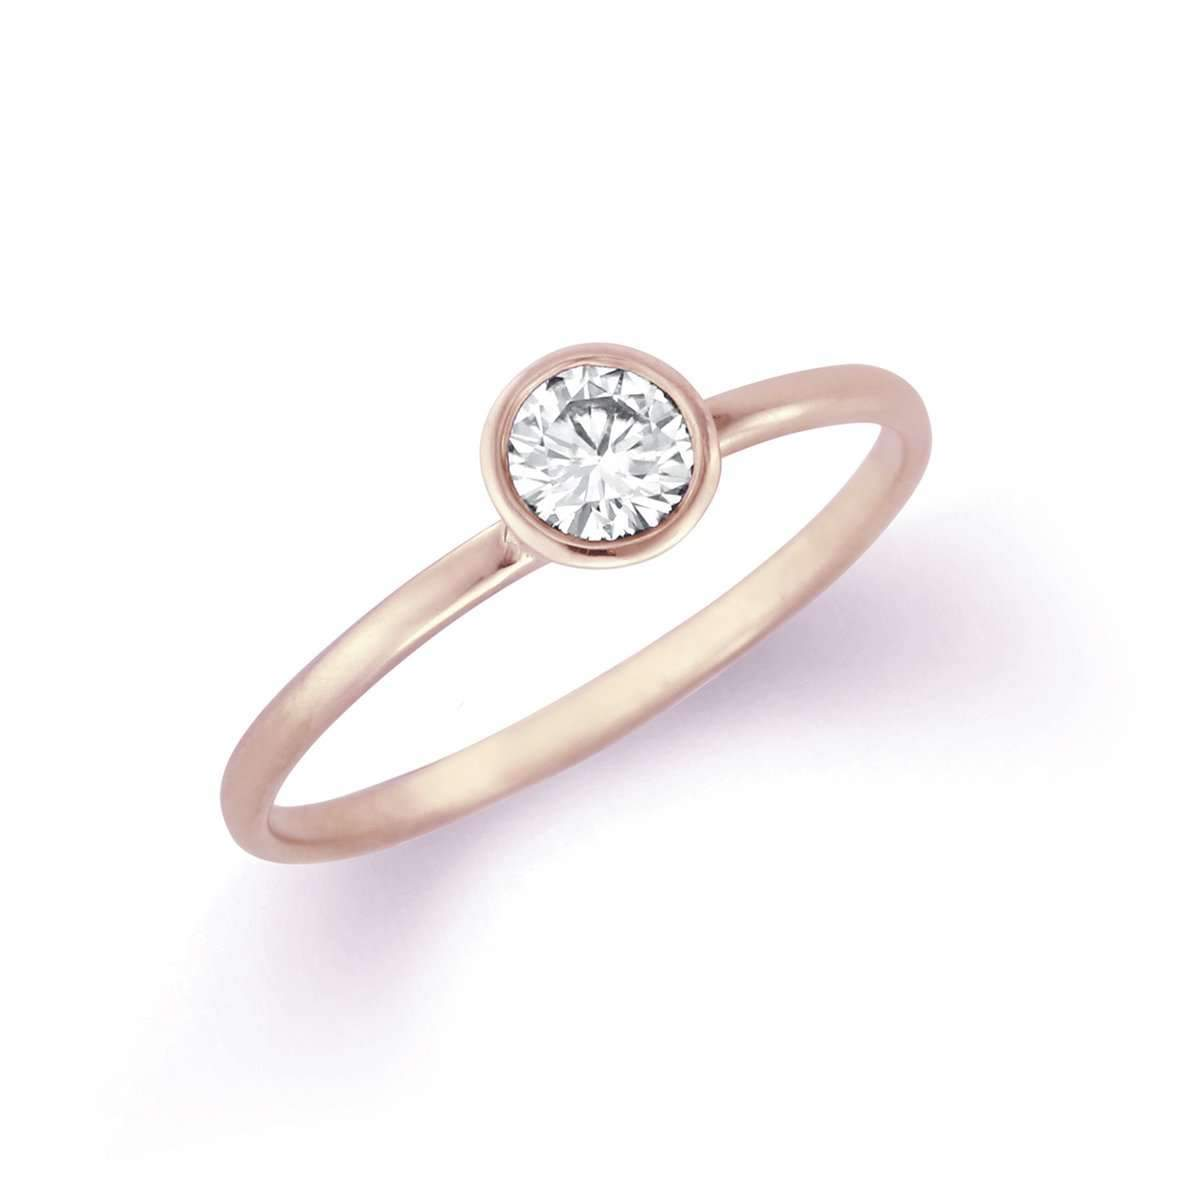 Petite Classic Bezel Solitaire Ring with Diamond or Moissanite-Alysha Whitfield